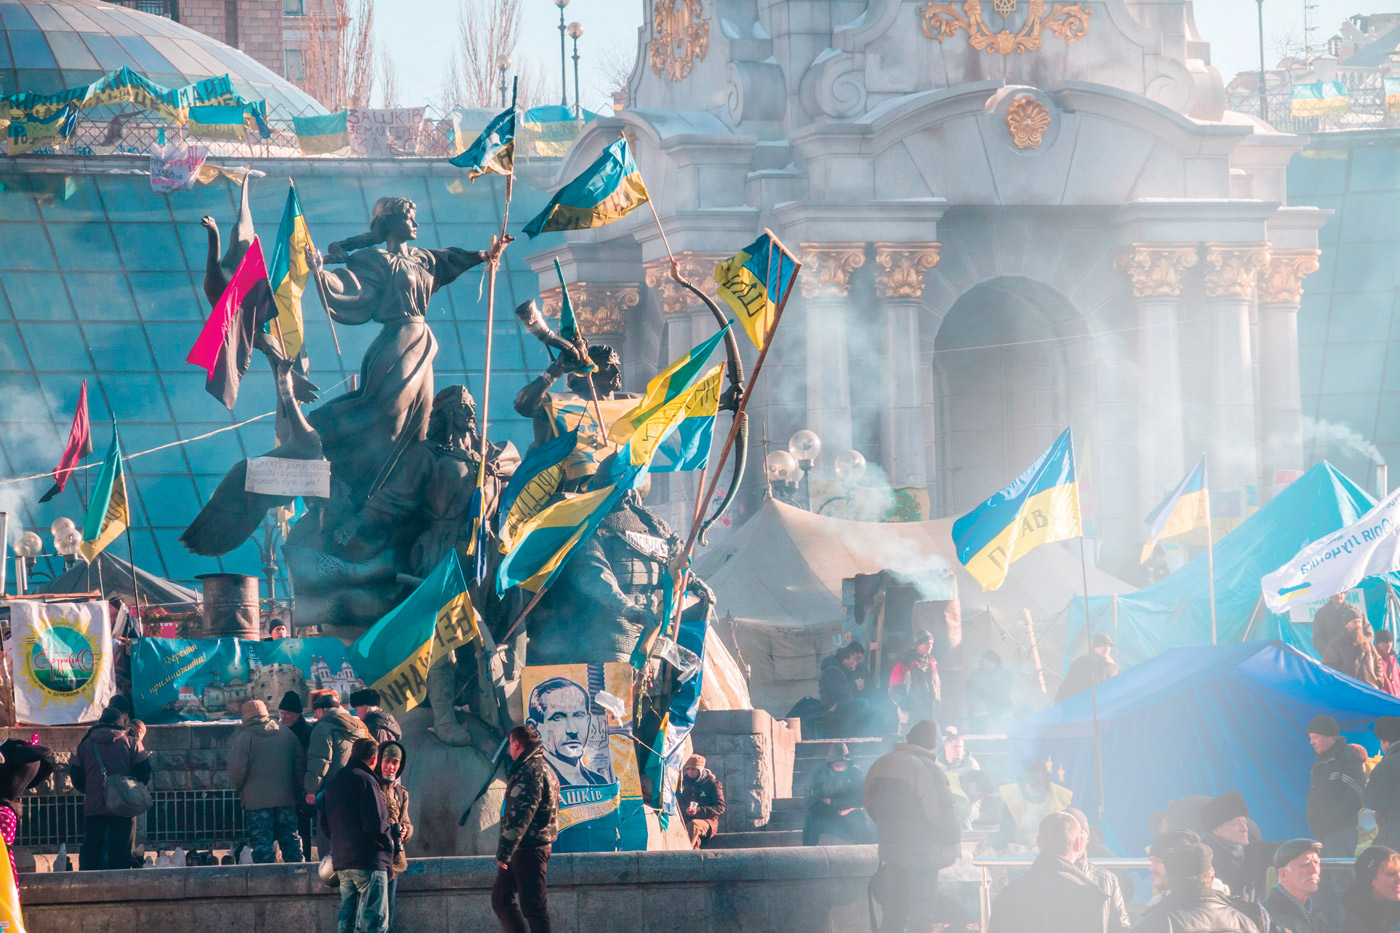 Located in Independence Square, the monument to the founders of Kyiv is covered in protester flags. Photo: Demotix.com.